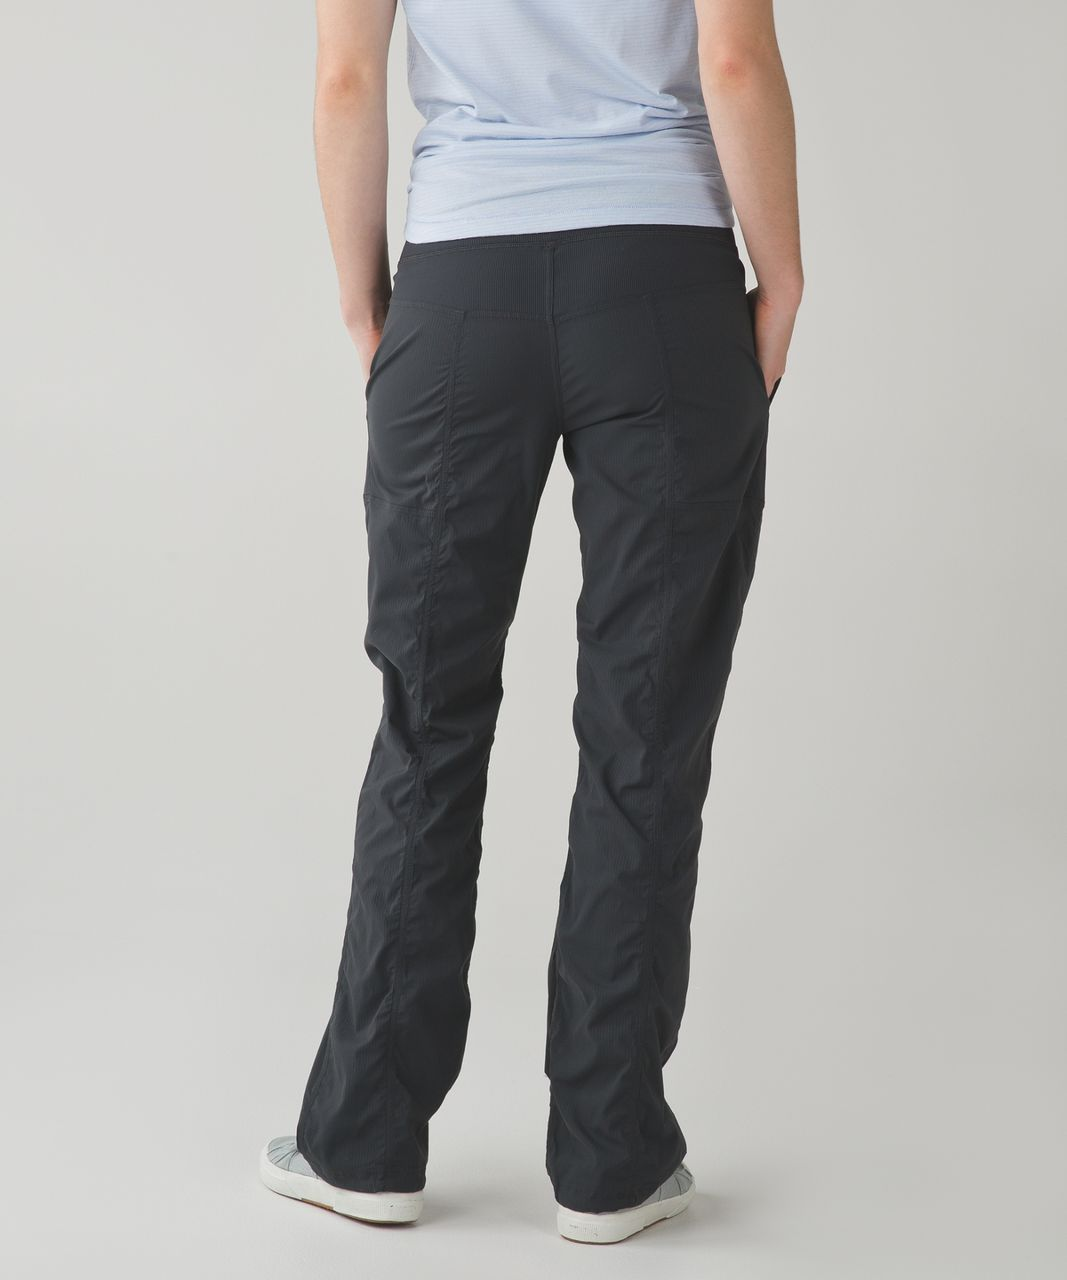 Lululemon Studio Pant III (Regular) - Deep Coal